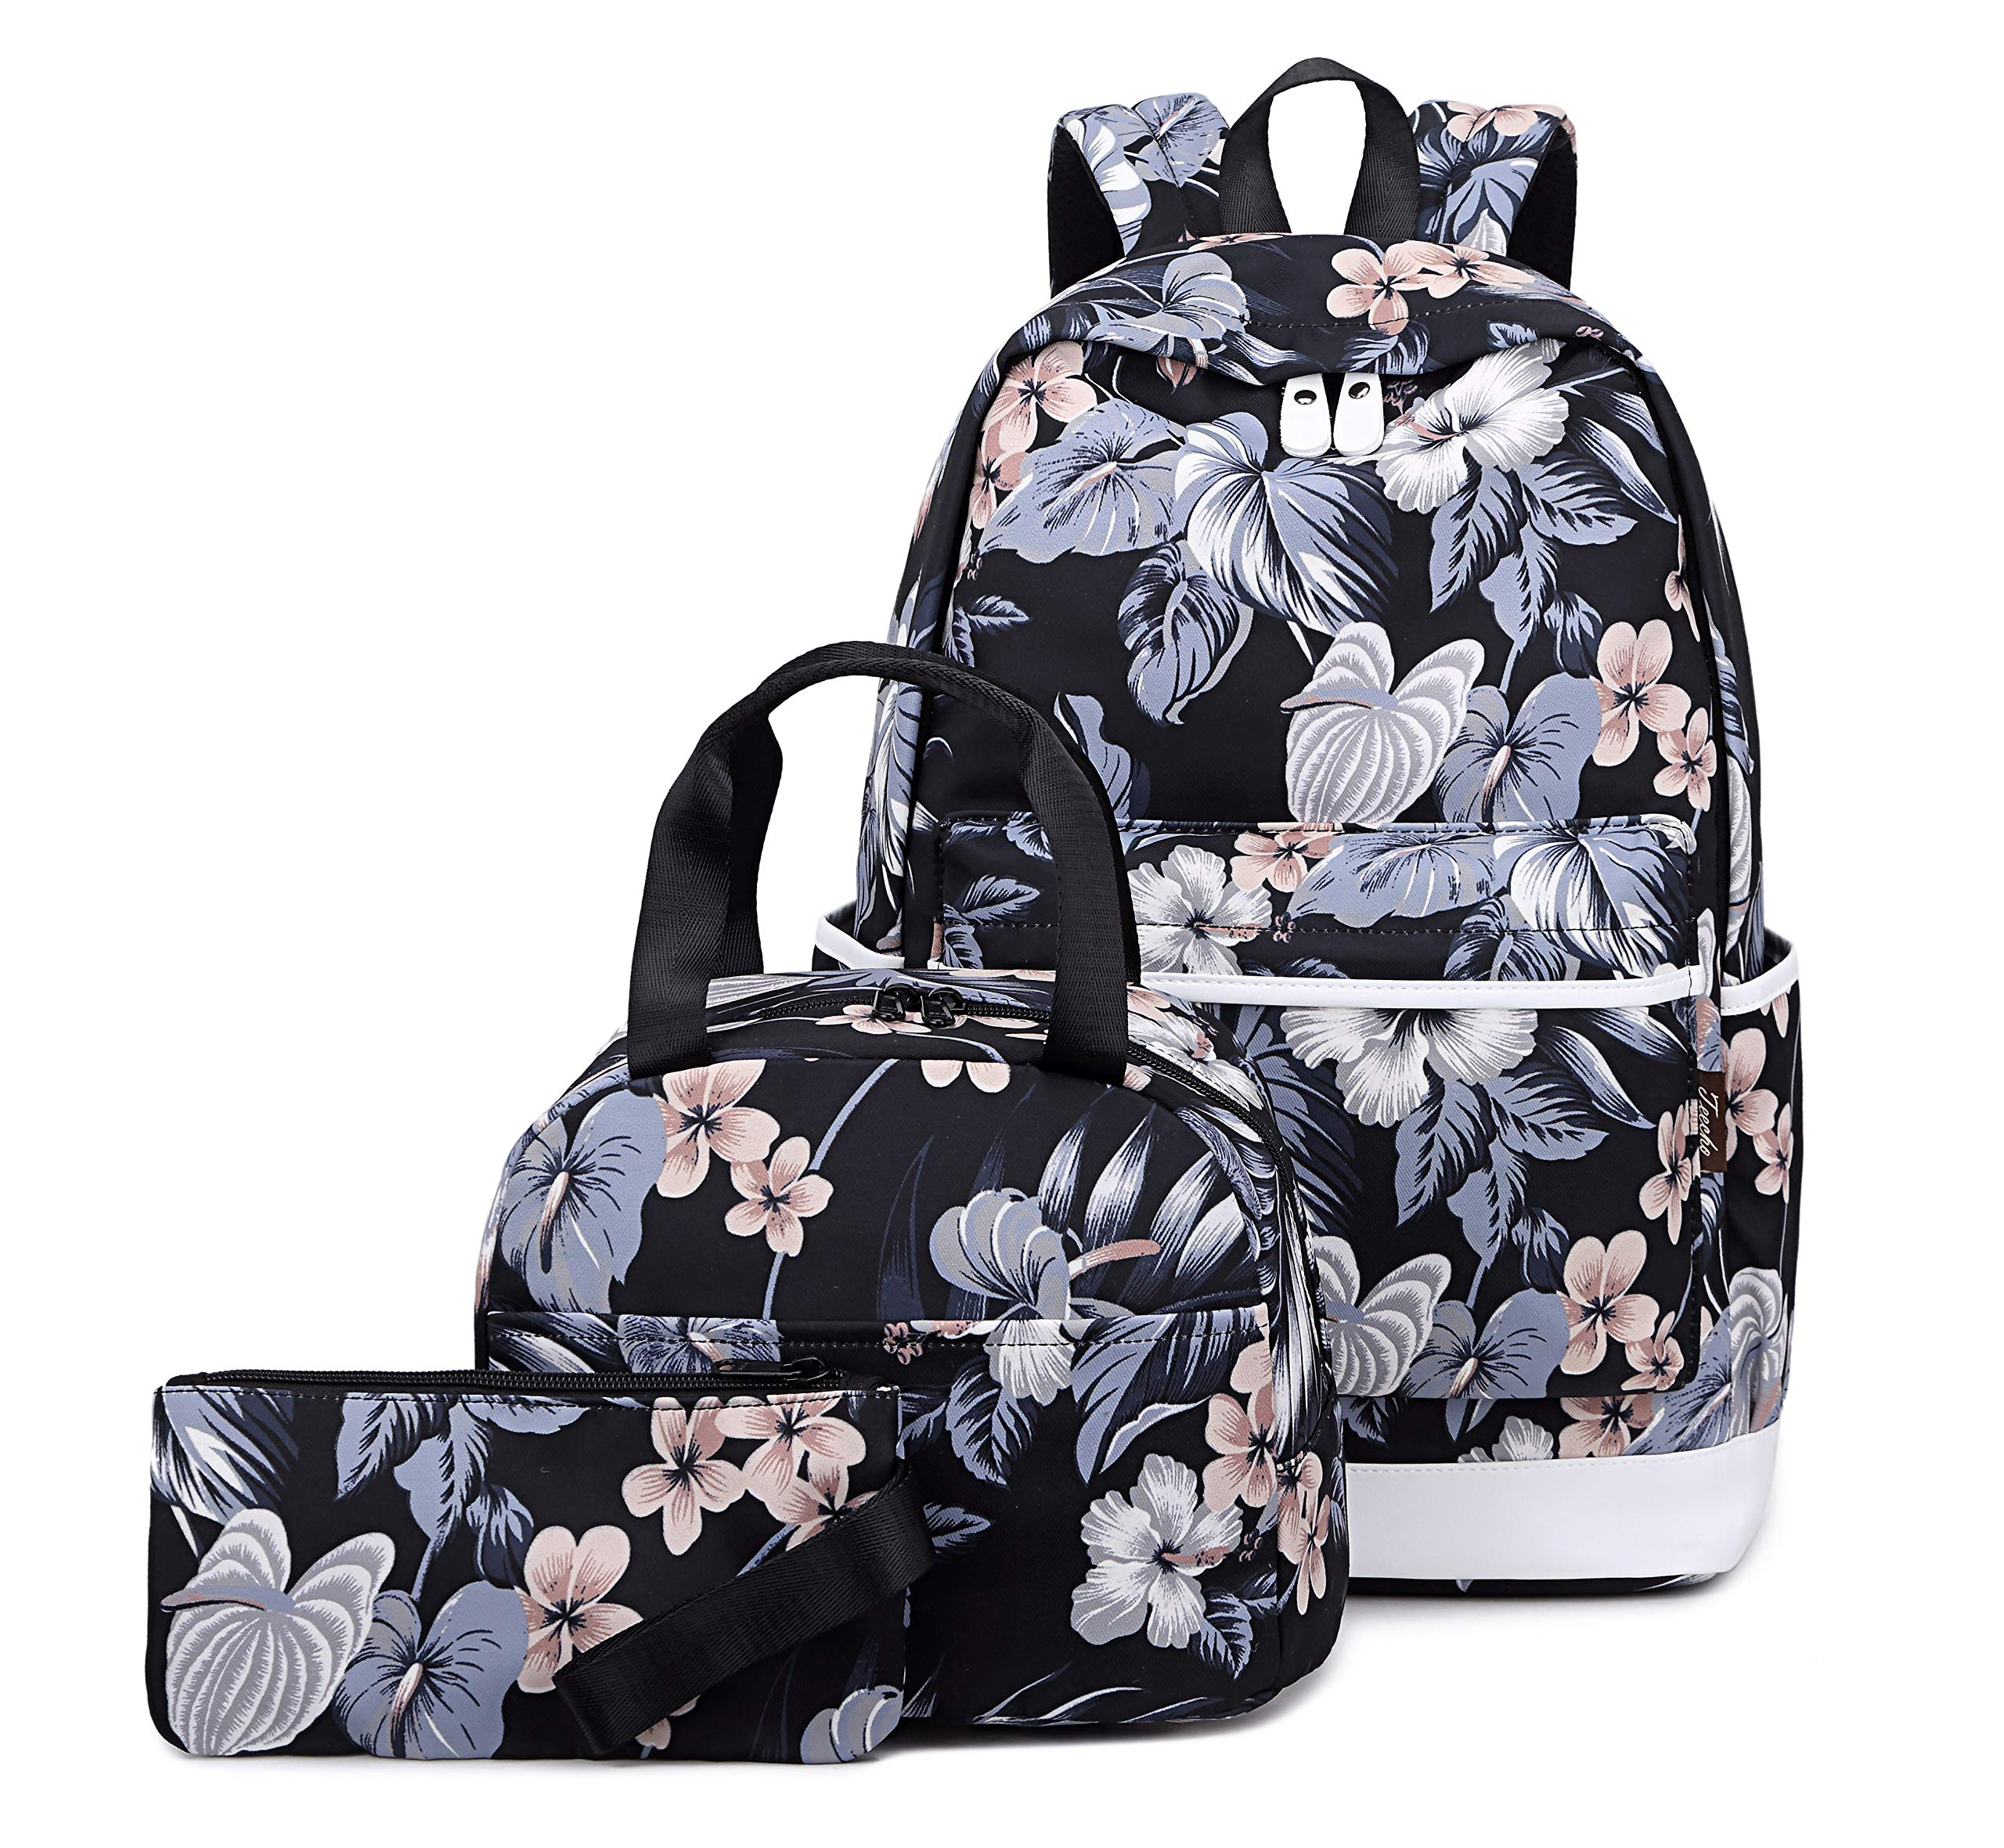 Joymoze Water Resistant Teen Girl Bookbag with Lunch Bag and Pencil Purse Black Flower